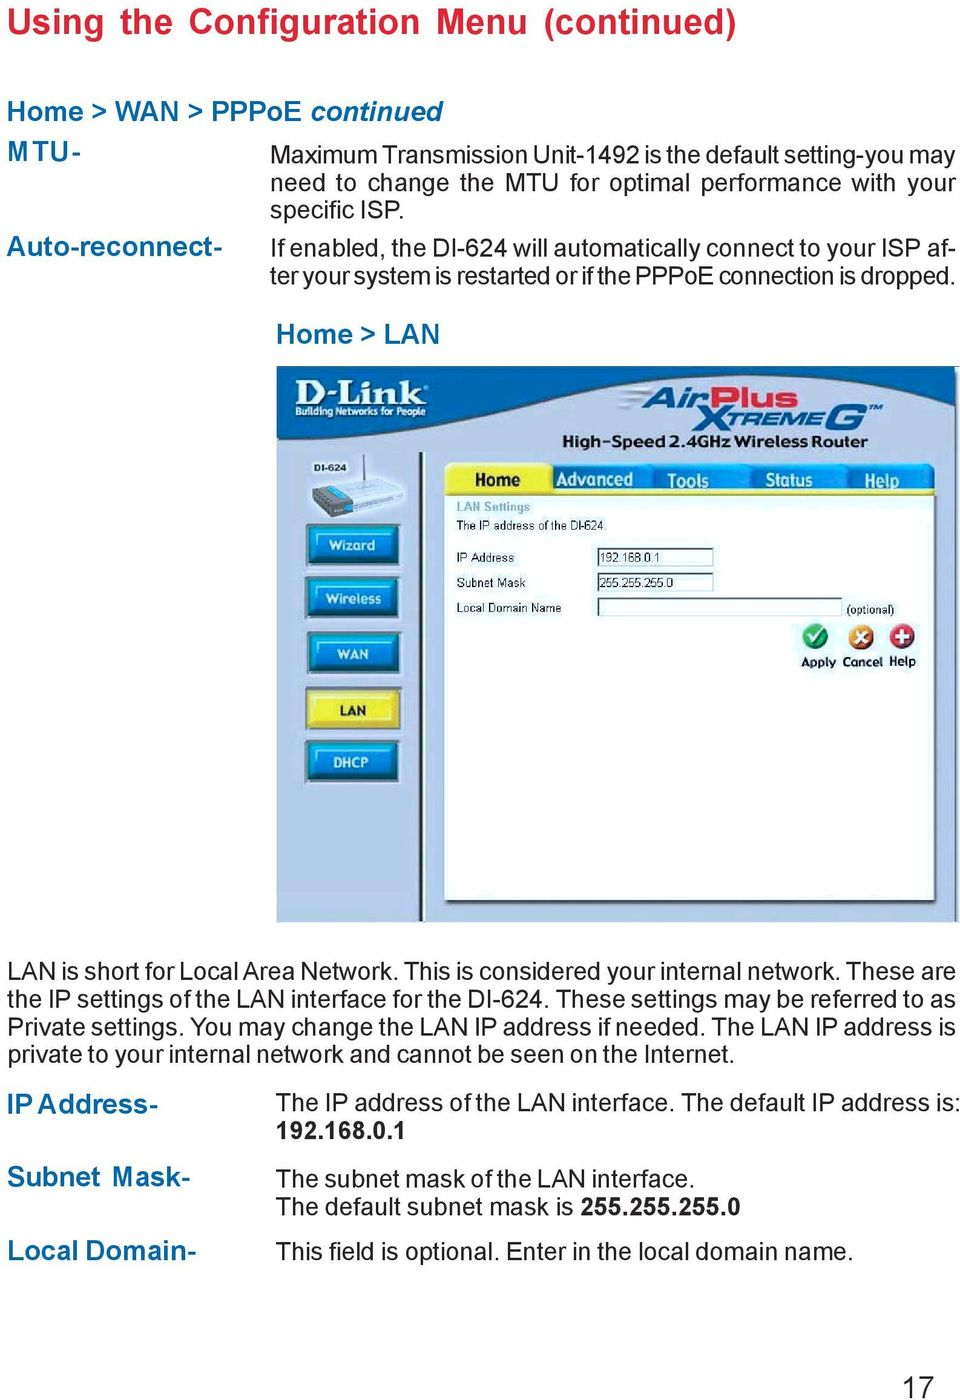 Home > LAN LAN is short for Local Area Network. This is considered your internal network. These are the IP settings of the LAN interface for the DI-624.